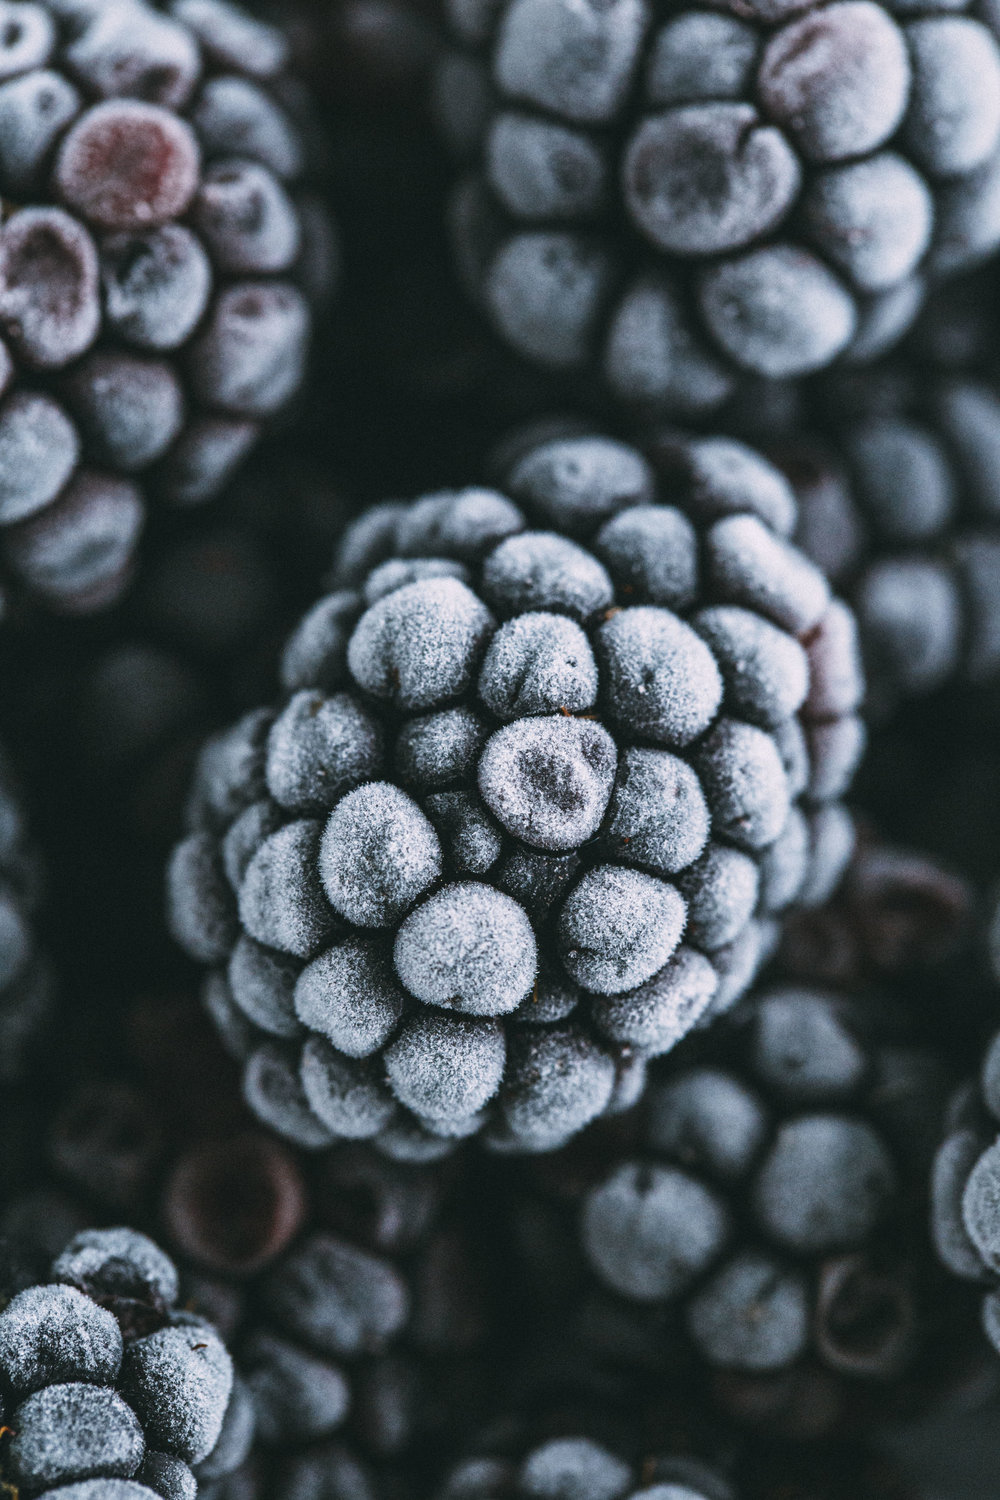 blackberries1 copy.jpg